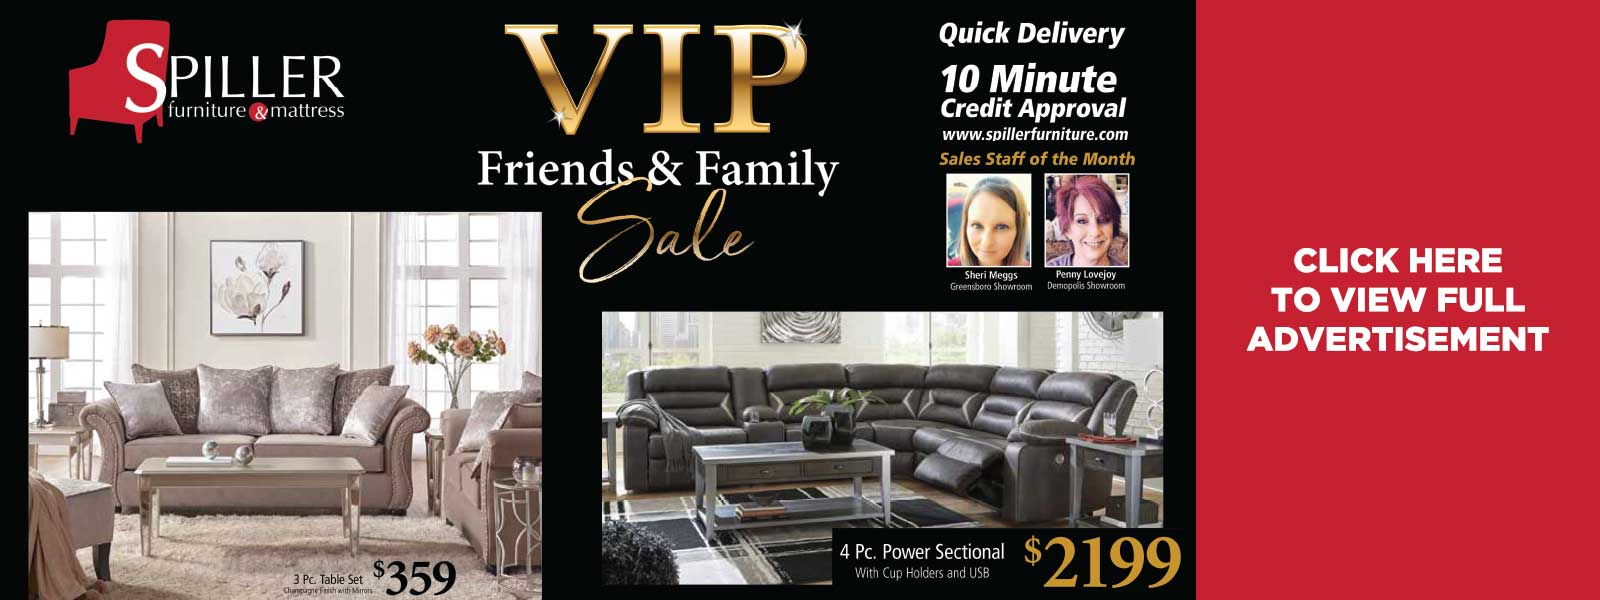 VIP-FriendsFamily-Banner